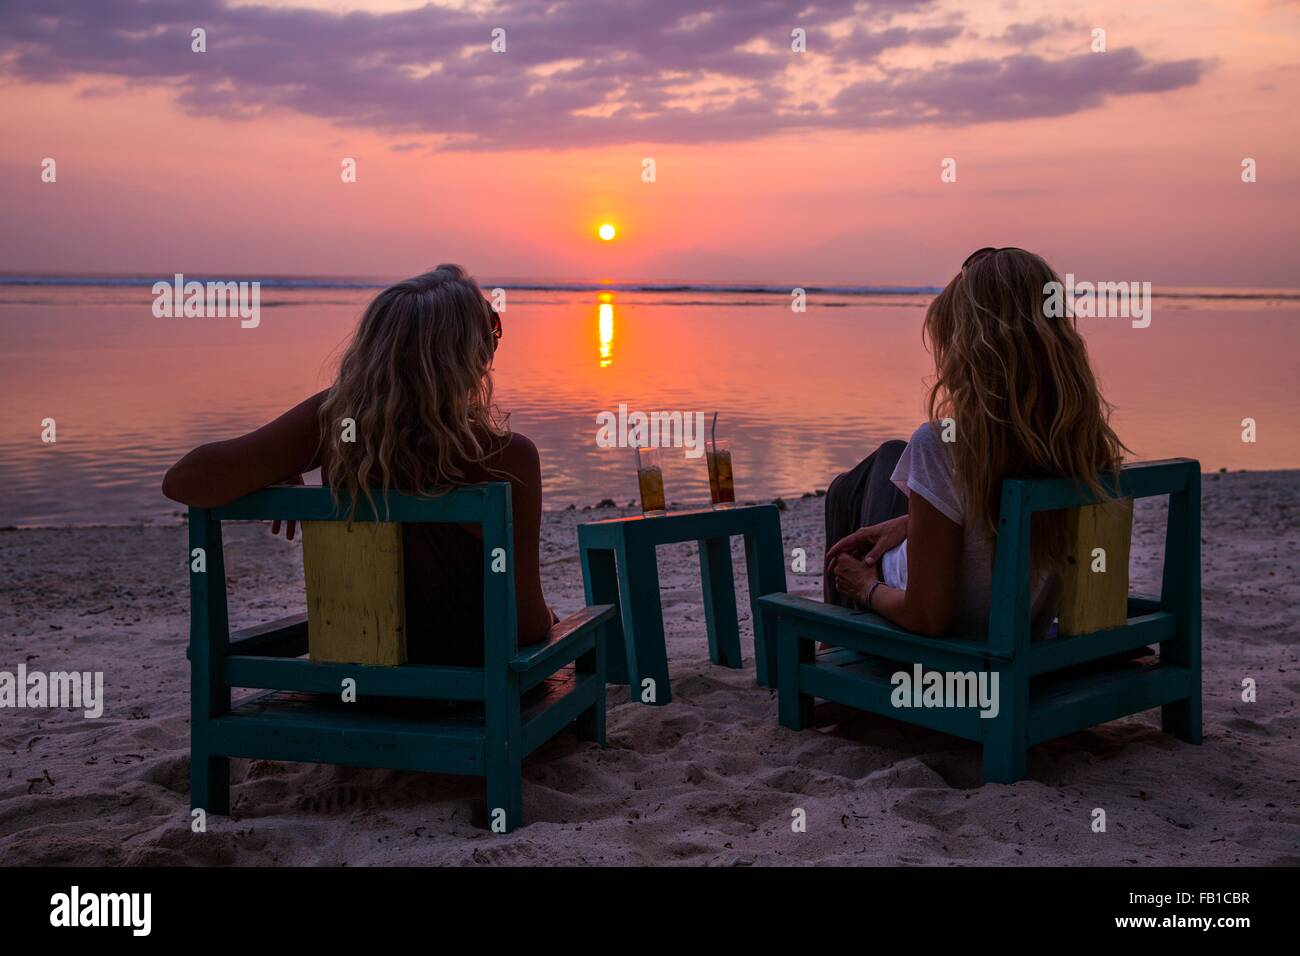 Silhouetted female tourists watching sunset over sea, Gili Trawangan, Lombok, Indonesia - Stock Image